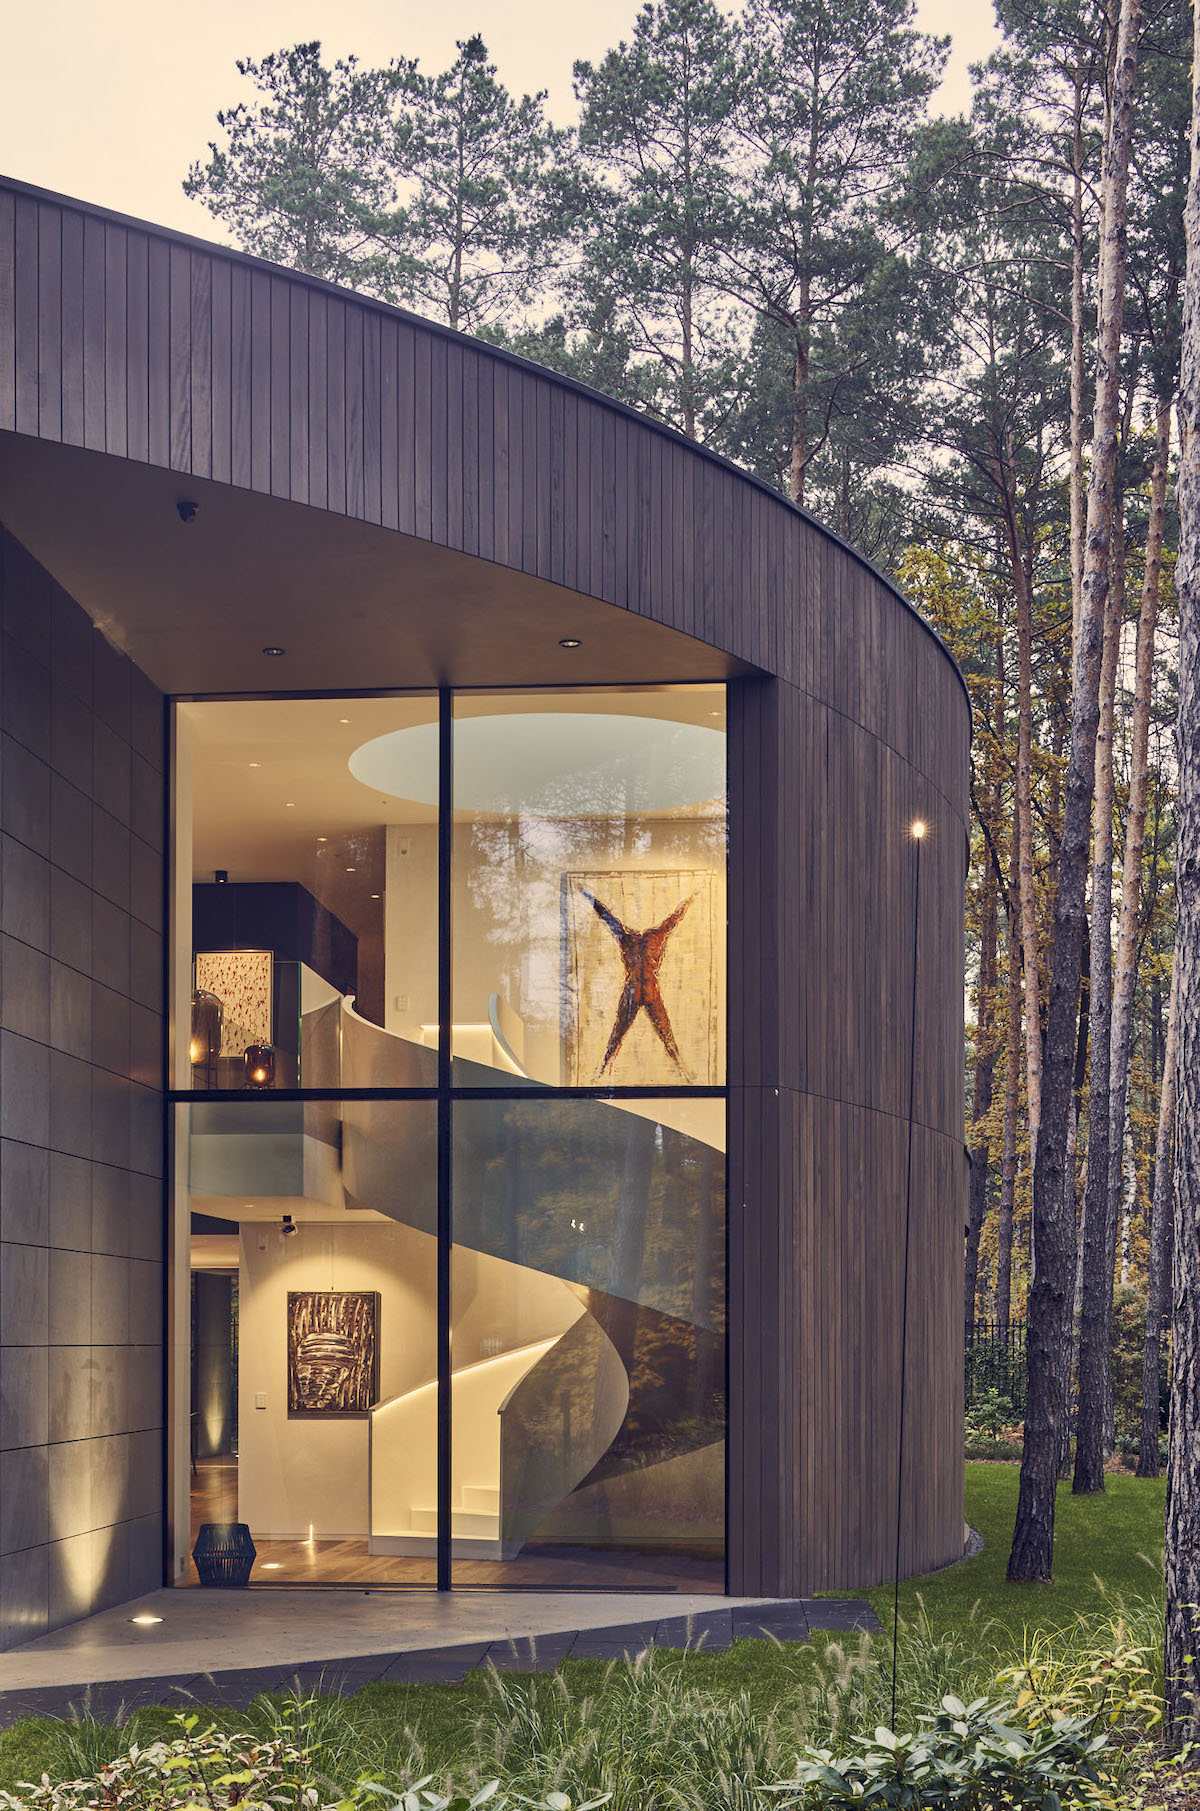 Circular Home in the Woods